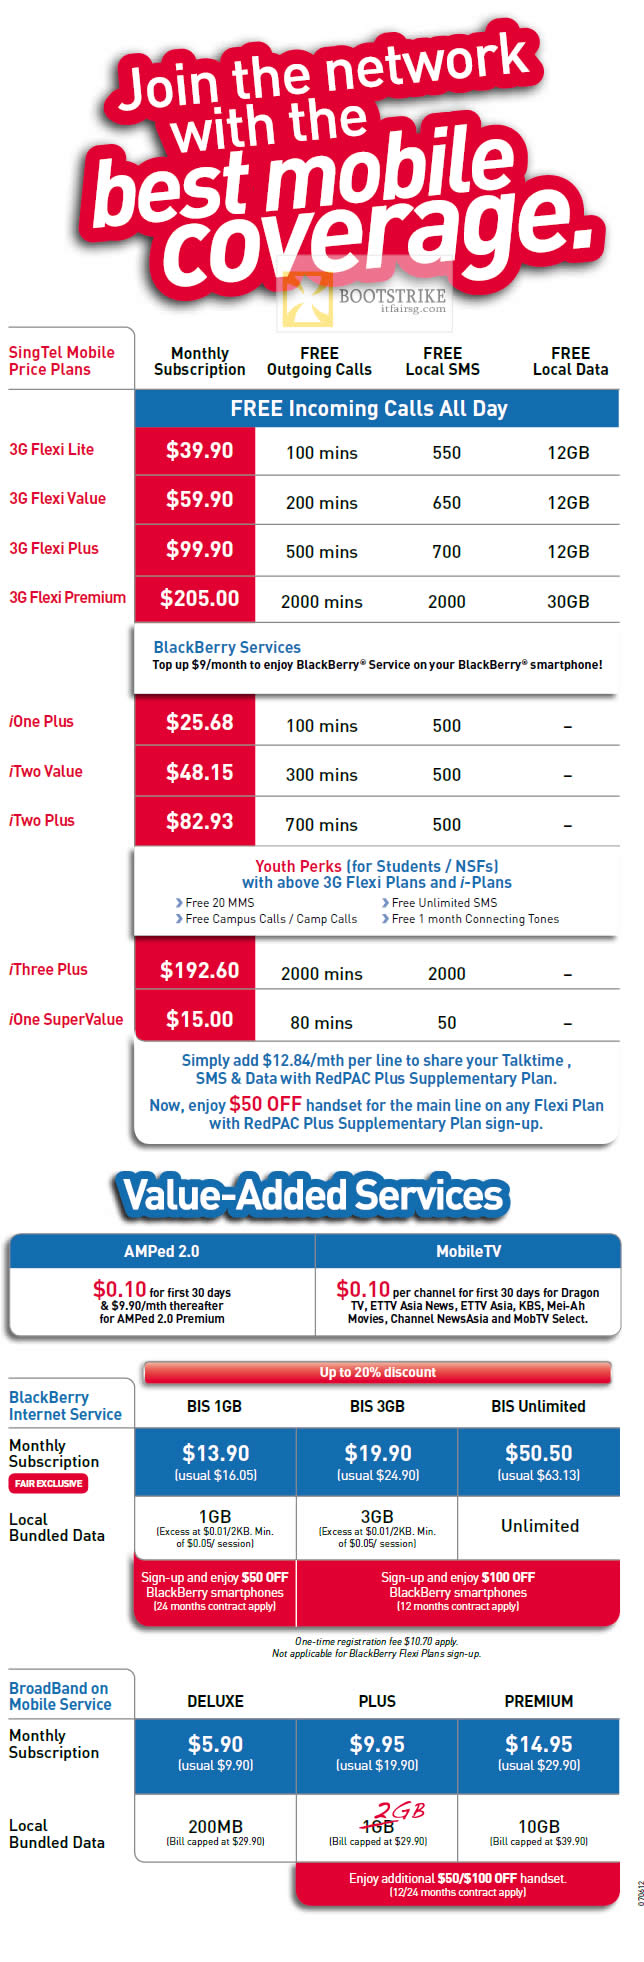 singtel adsl business plan